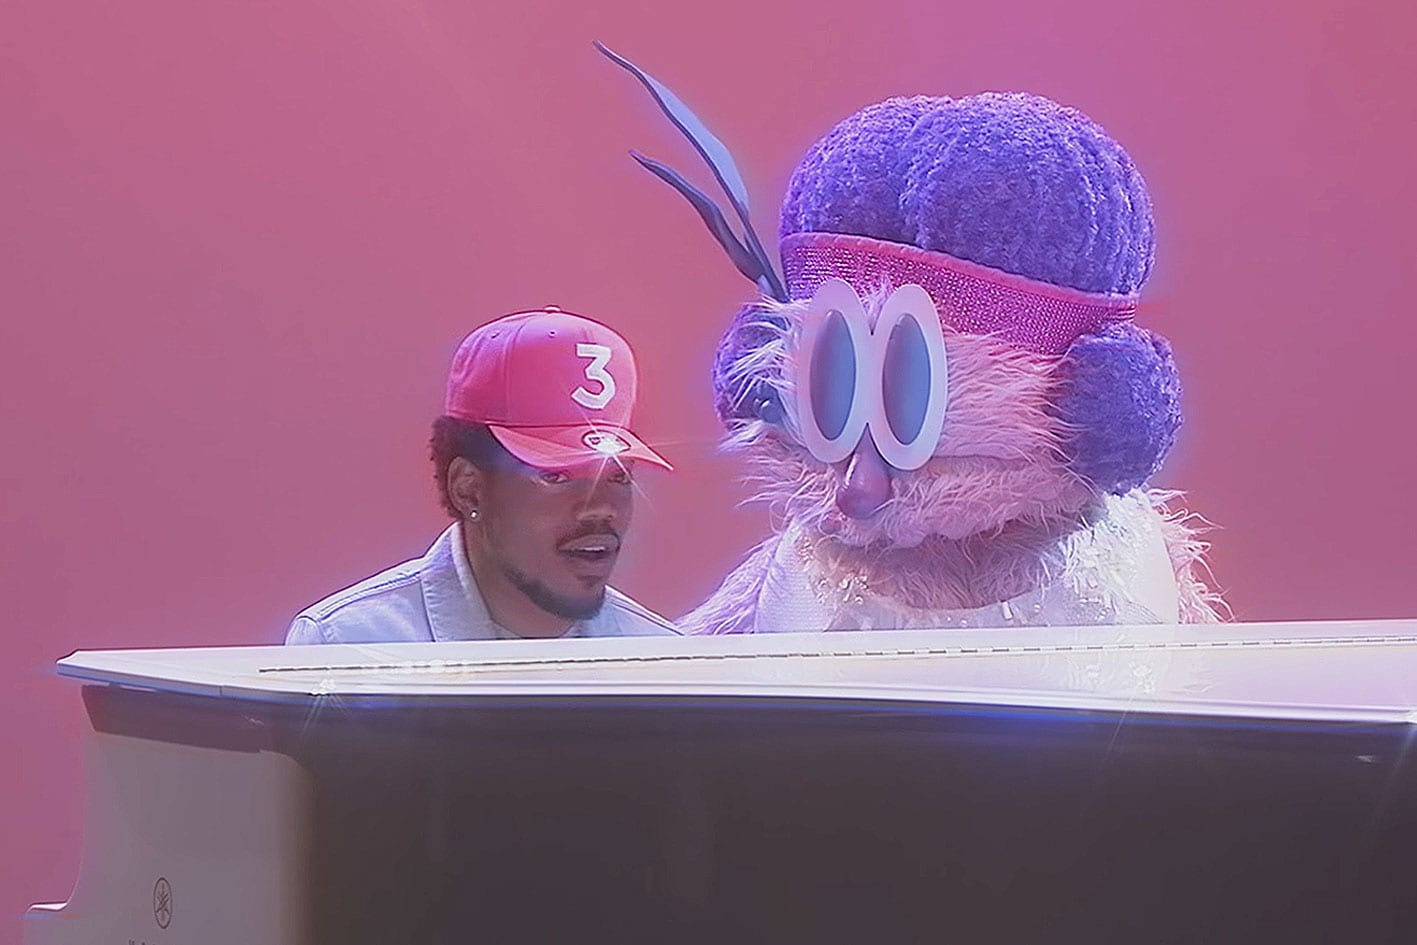 Le Nouveau Clip Psychédélique « Same Drugs » De Chance The Rapper